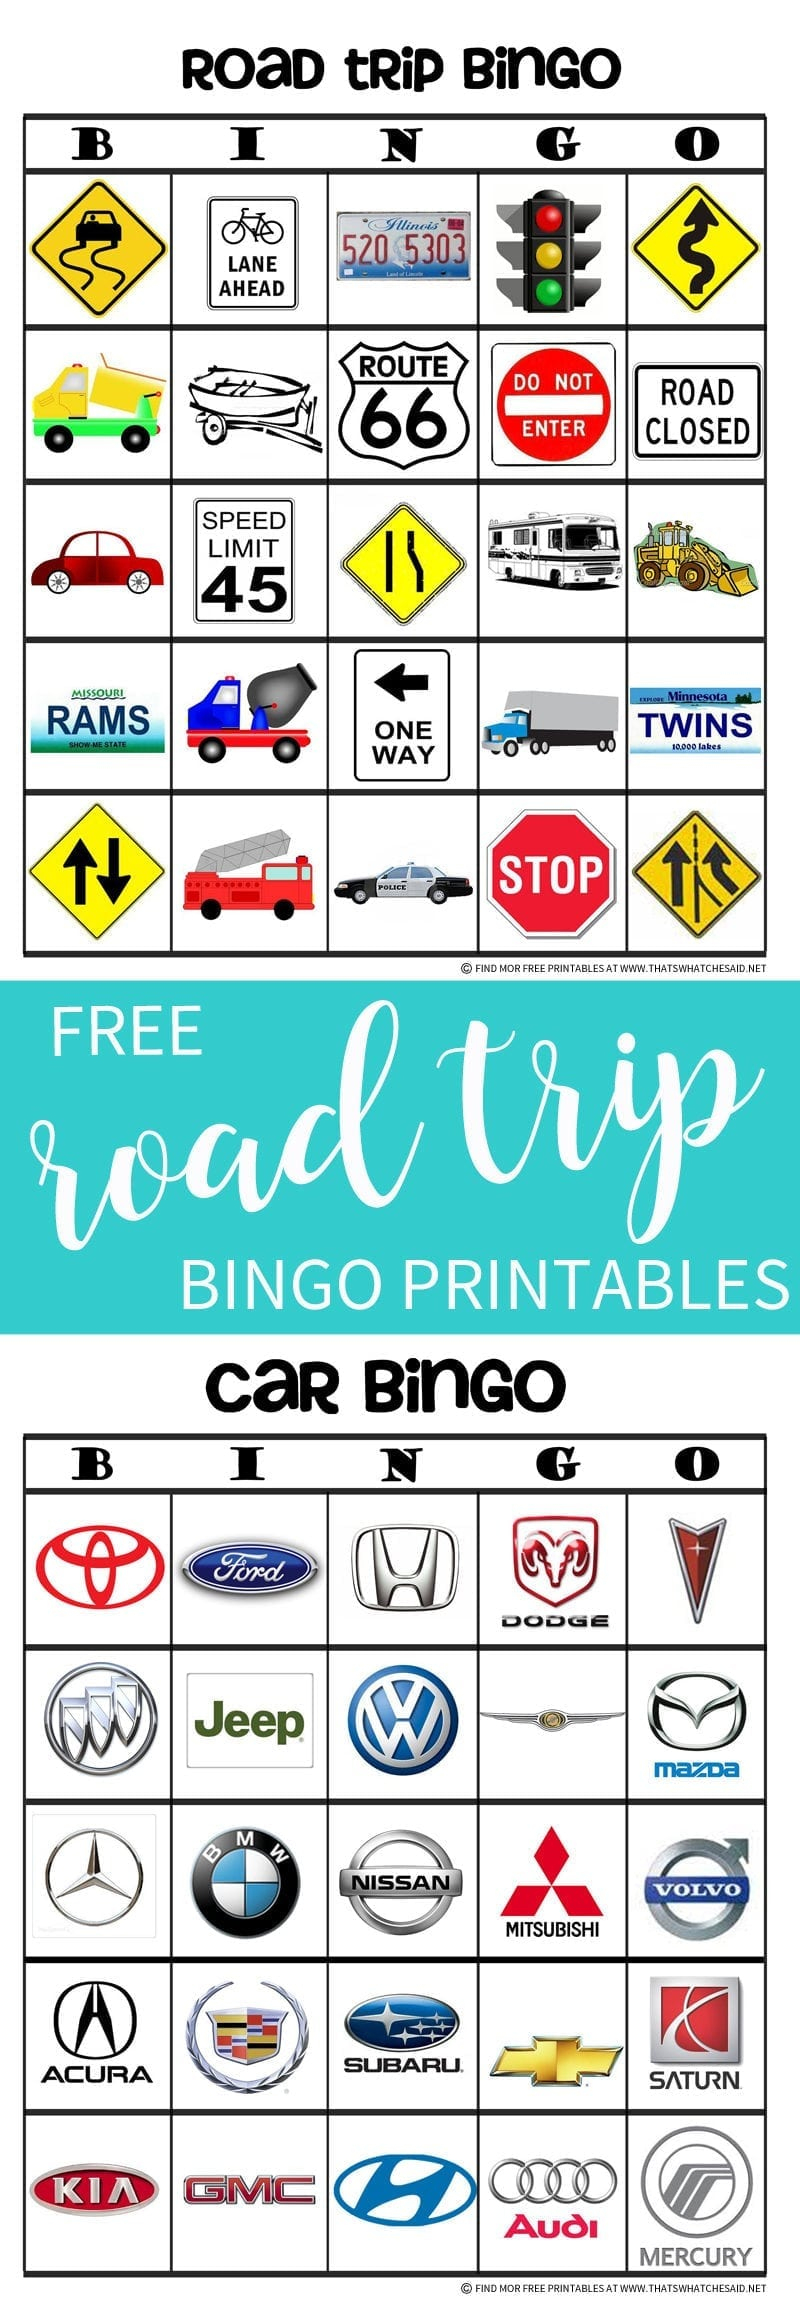 Road Trip Bingo Game Free Printable - That's What Che Said - Free Printable Car Bingo